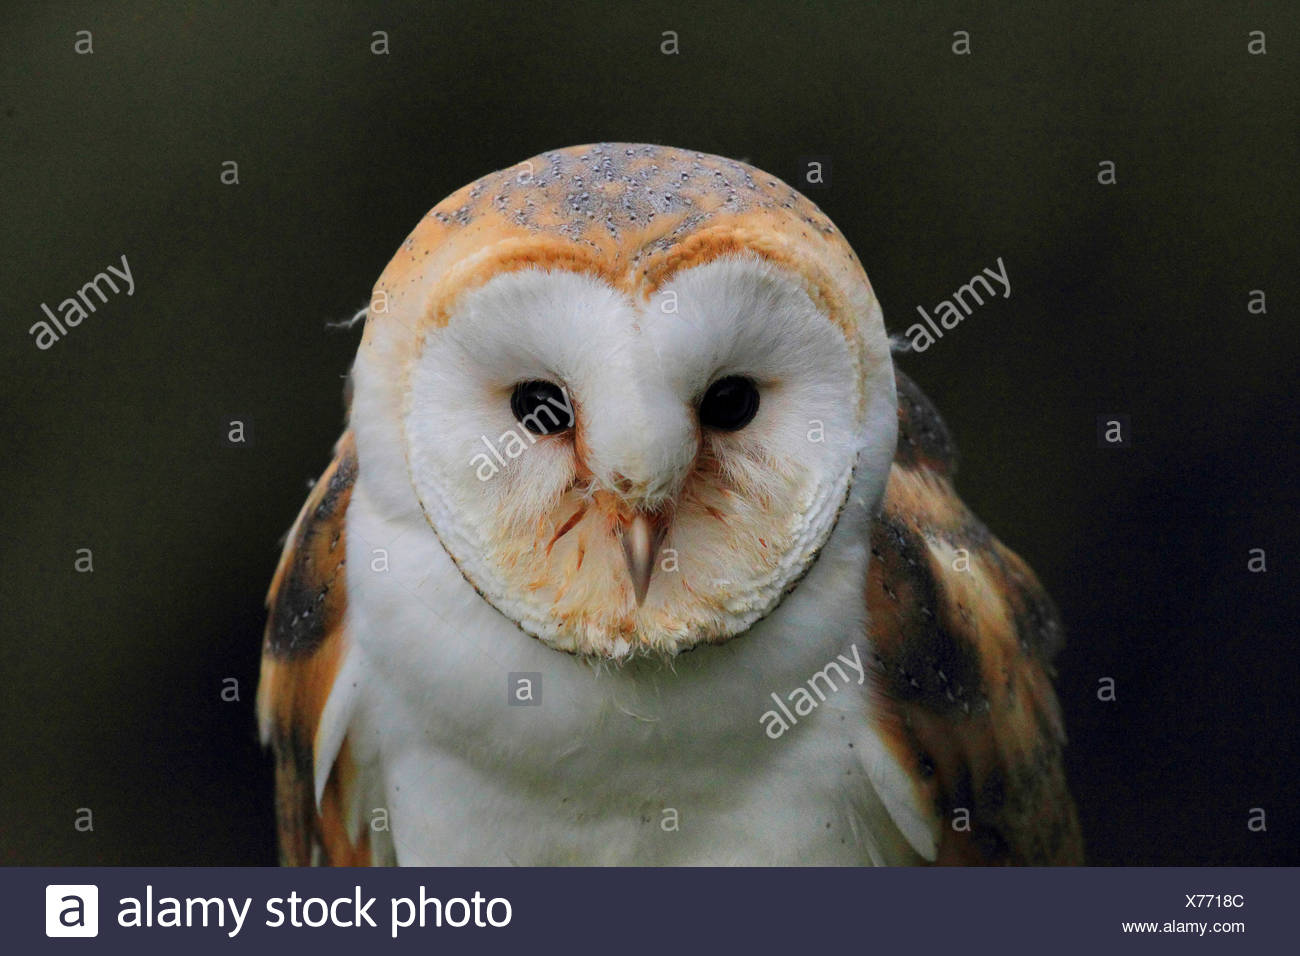 Barn owl (Tyto alba), portrait, front view, Germany - Stock Image